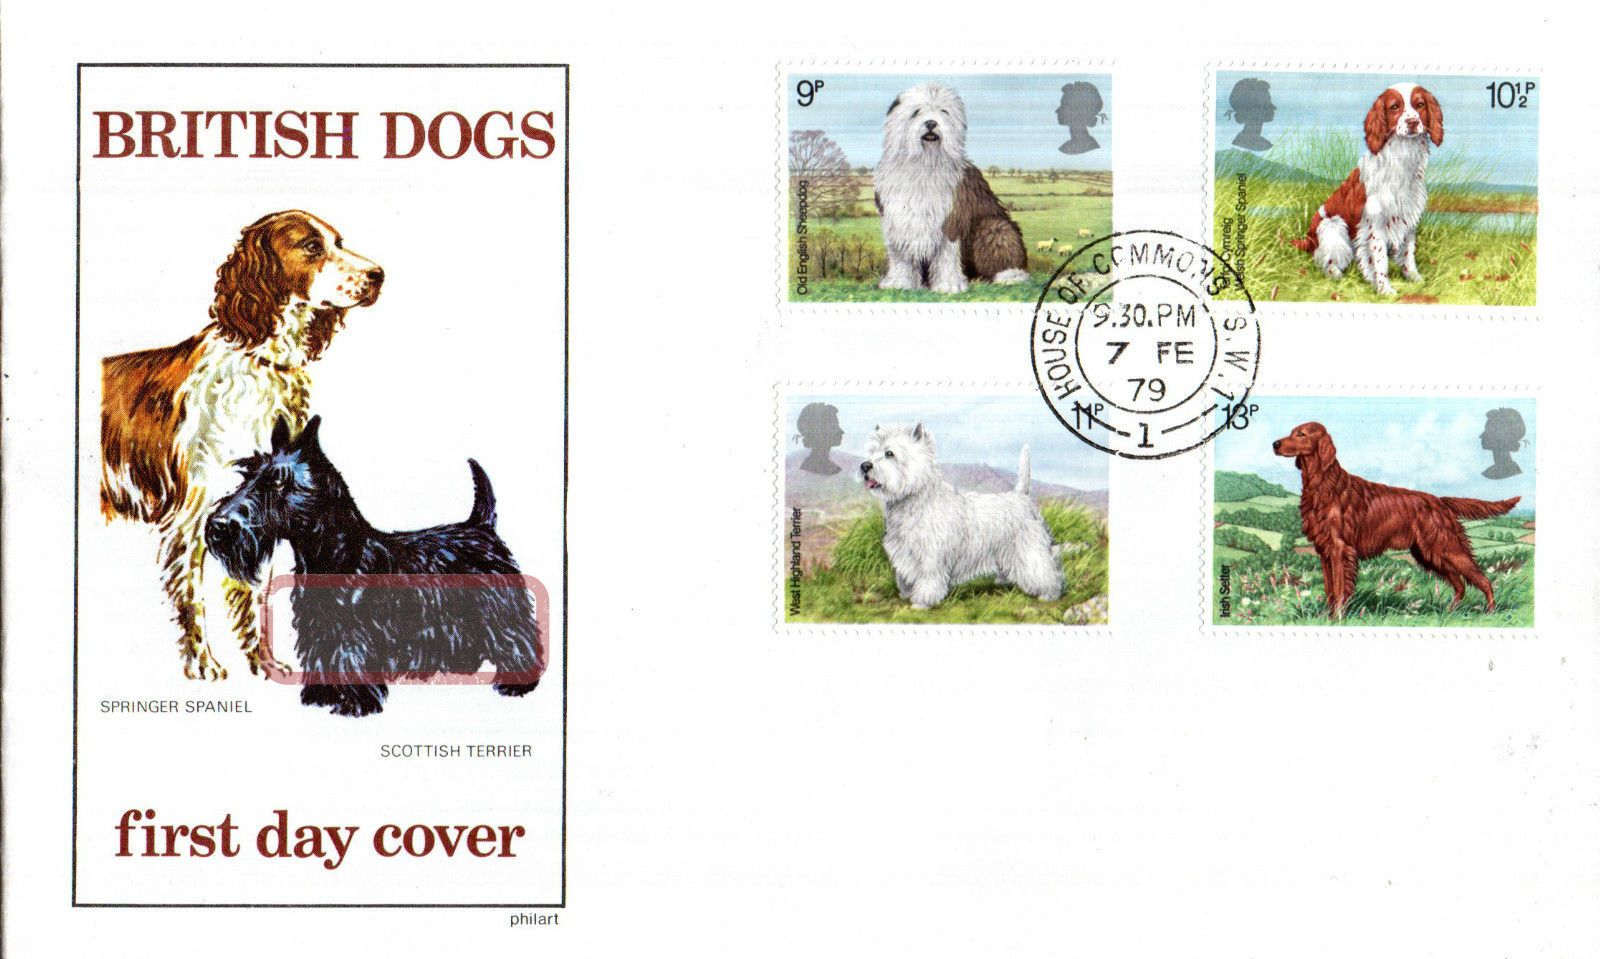 7 February 1979 Dogs Philart First Day Cover House Of Commons Sw1 Cds Animal Kingdom photo